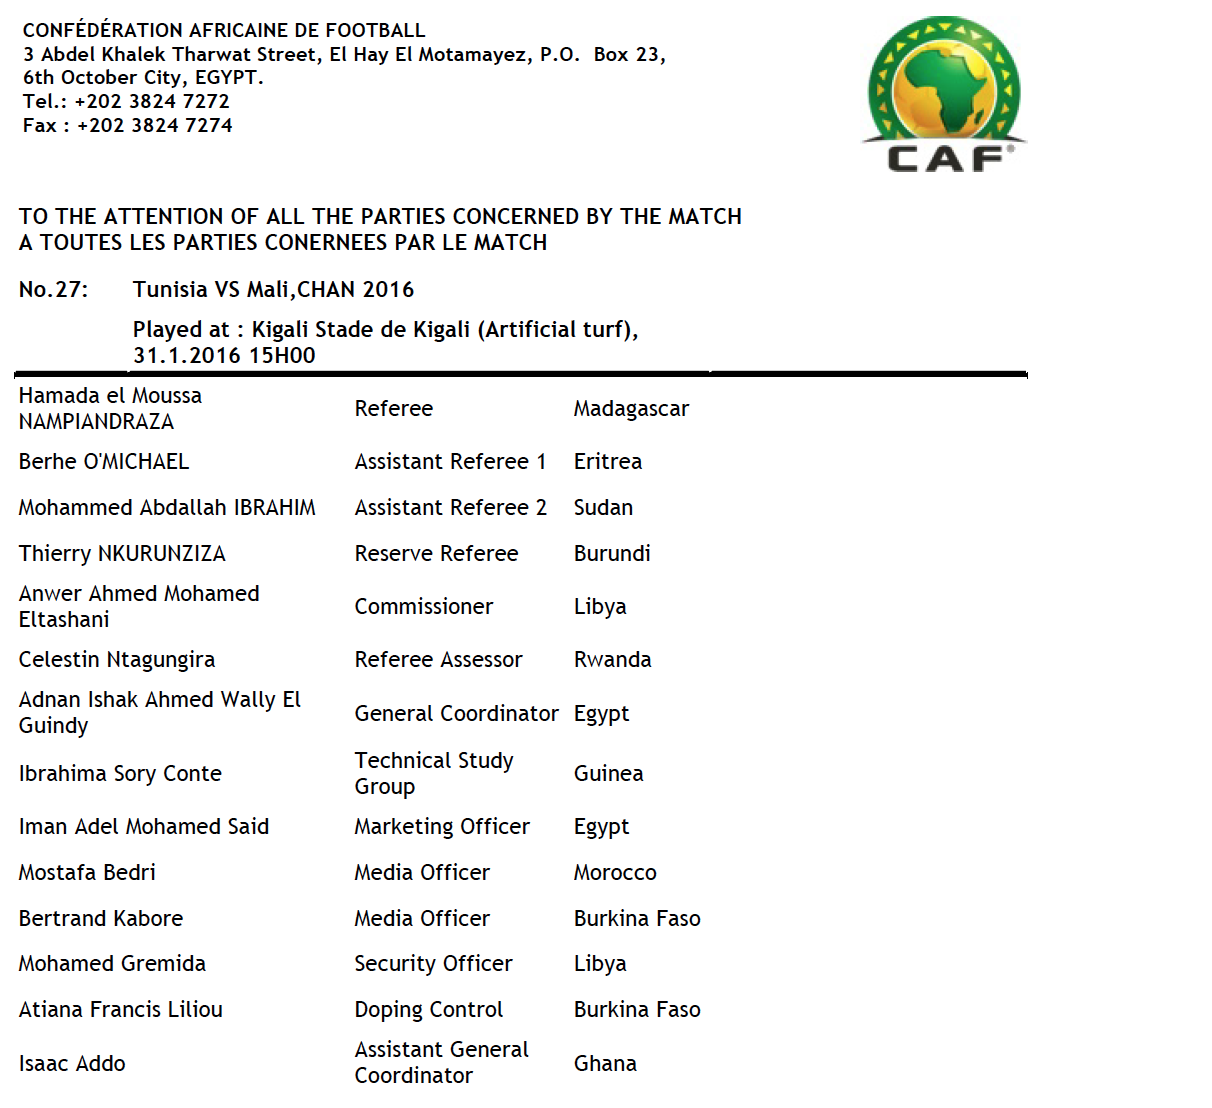 CHAN 2016 - TUNISIE vs MALI --- Officiels du Match